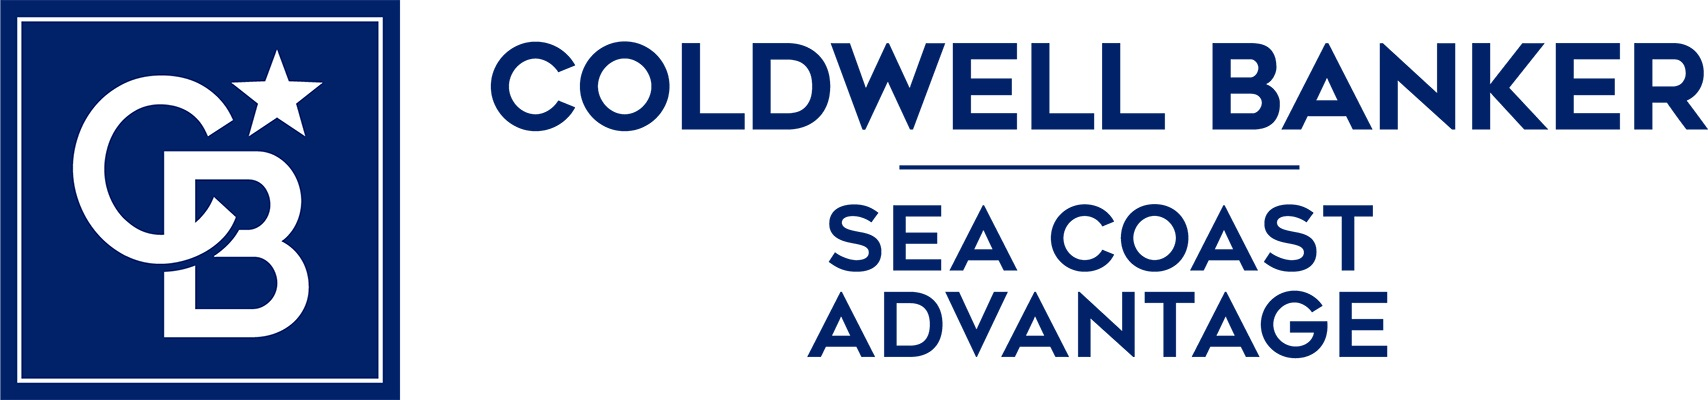 Amy Hoover - Coldwell Banker Sea Coast Advantage Realty